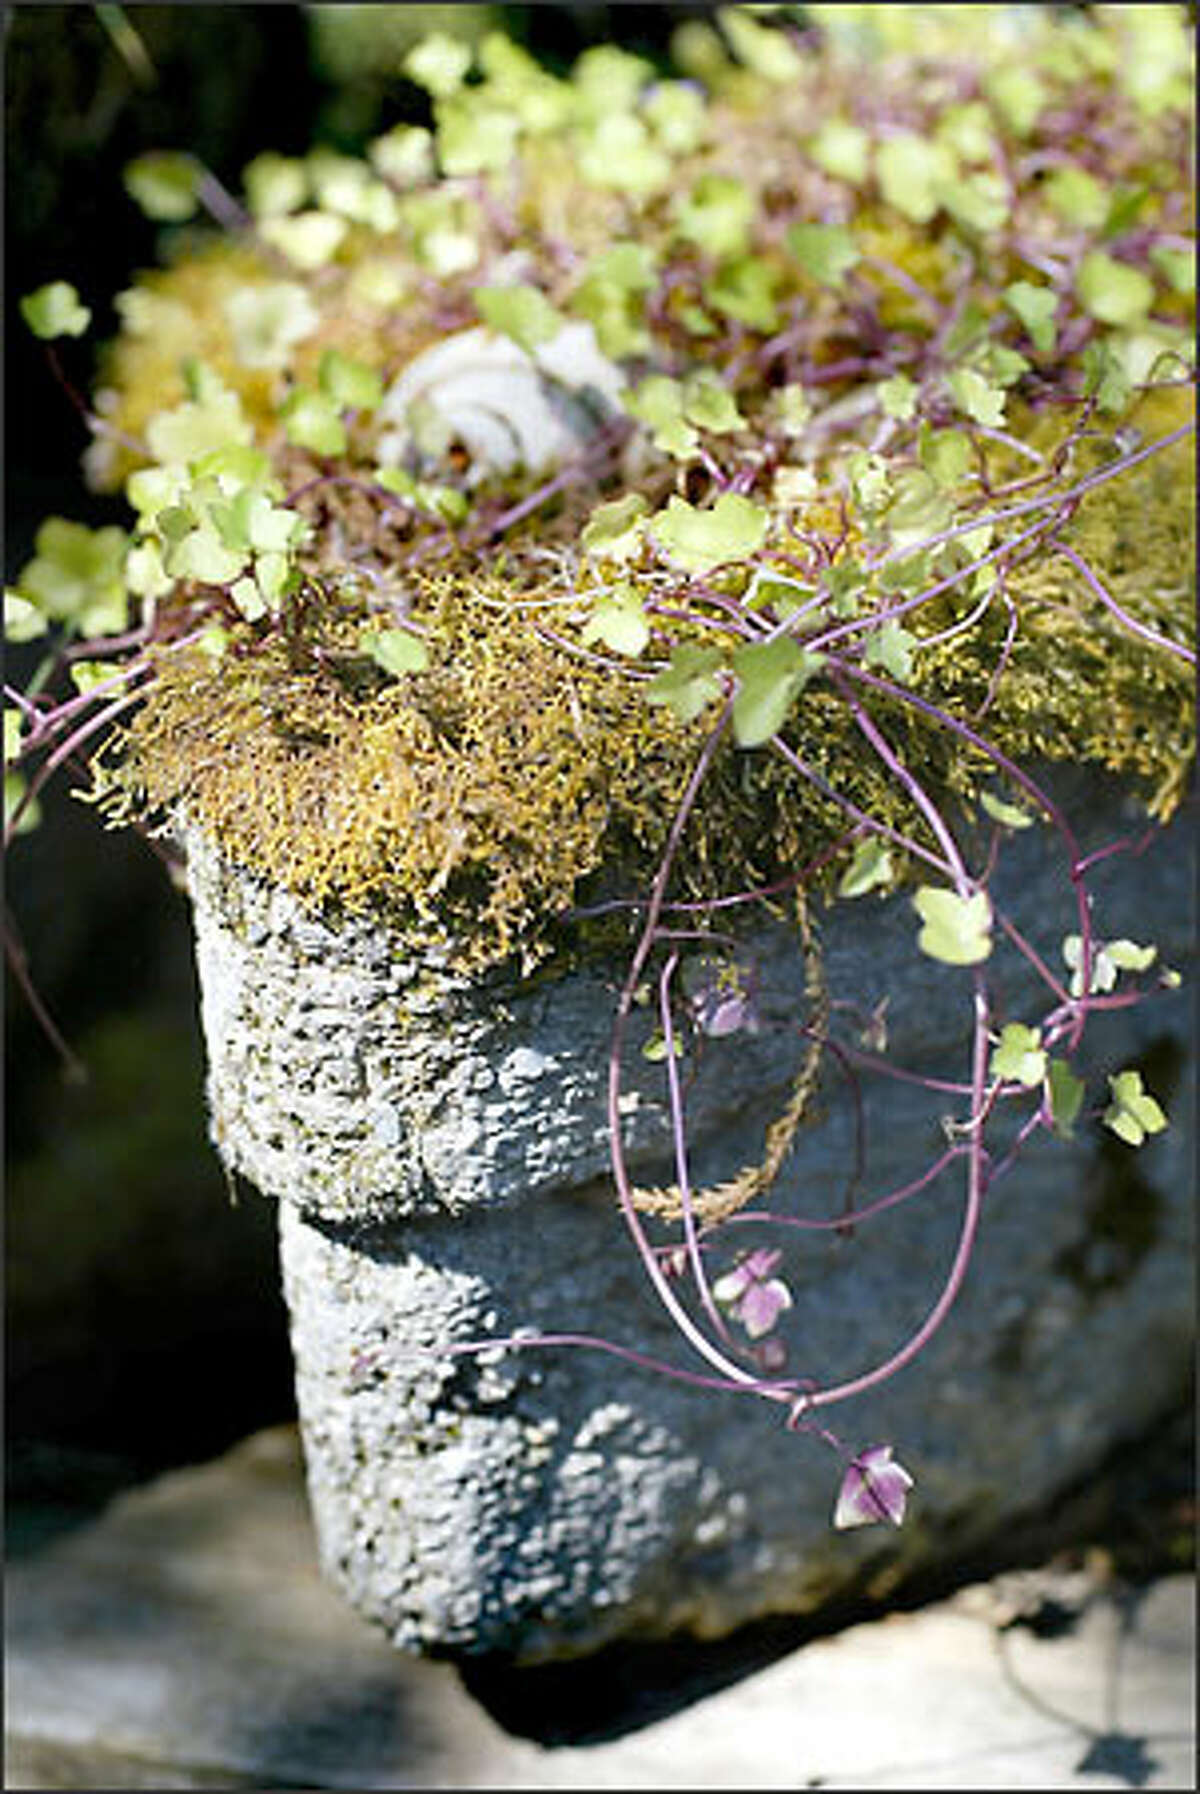 Kenilworth ivy grows in this diamond-shaped hypertufa container in Flynn's Sammamish garden.